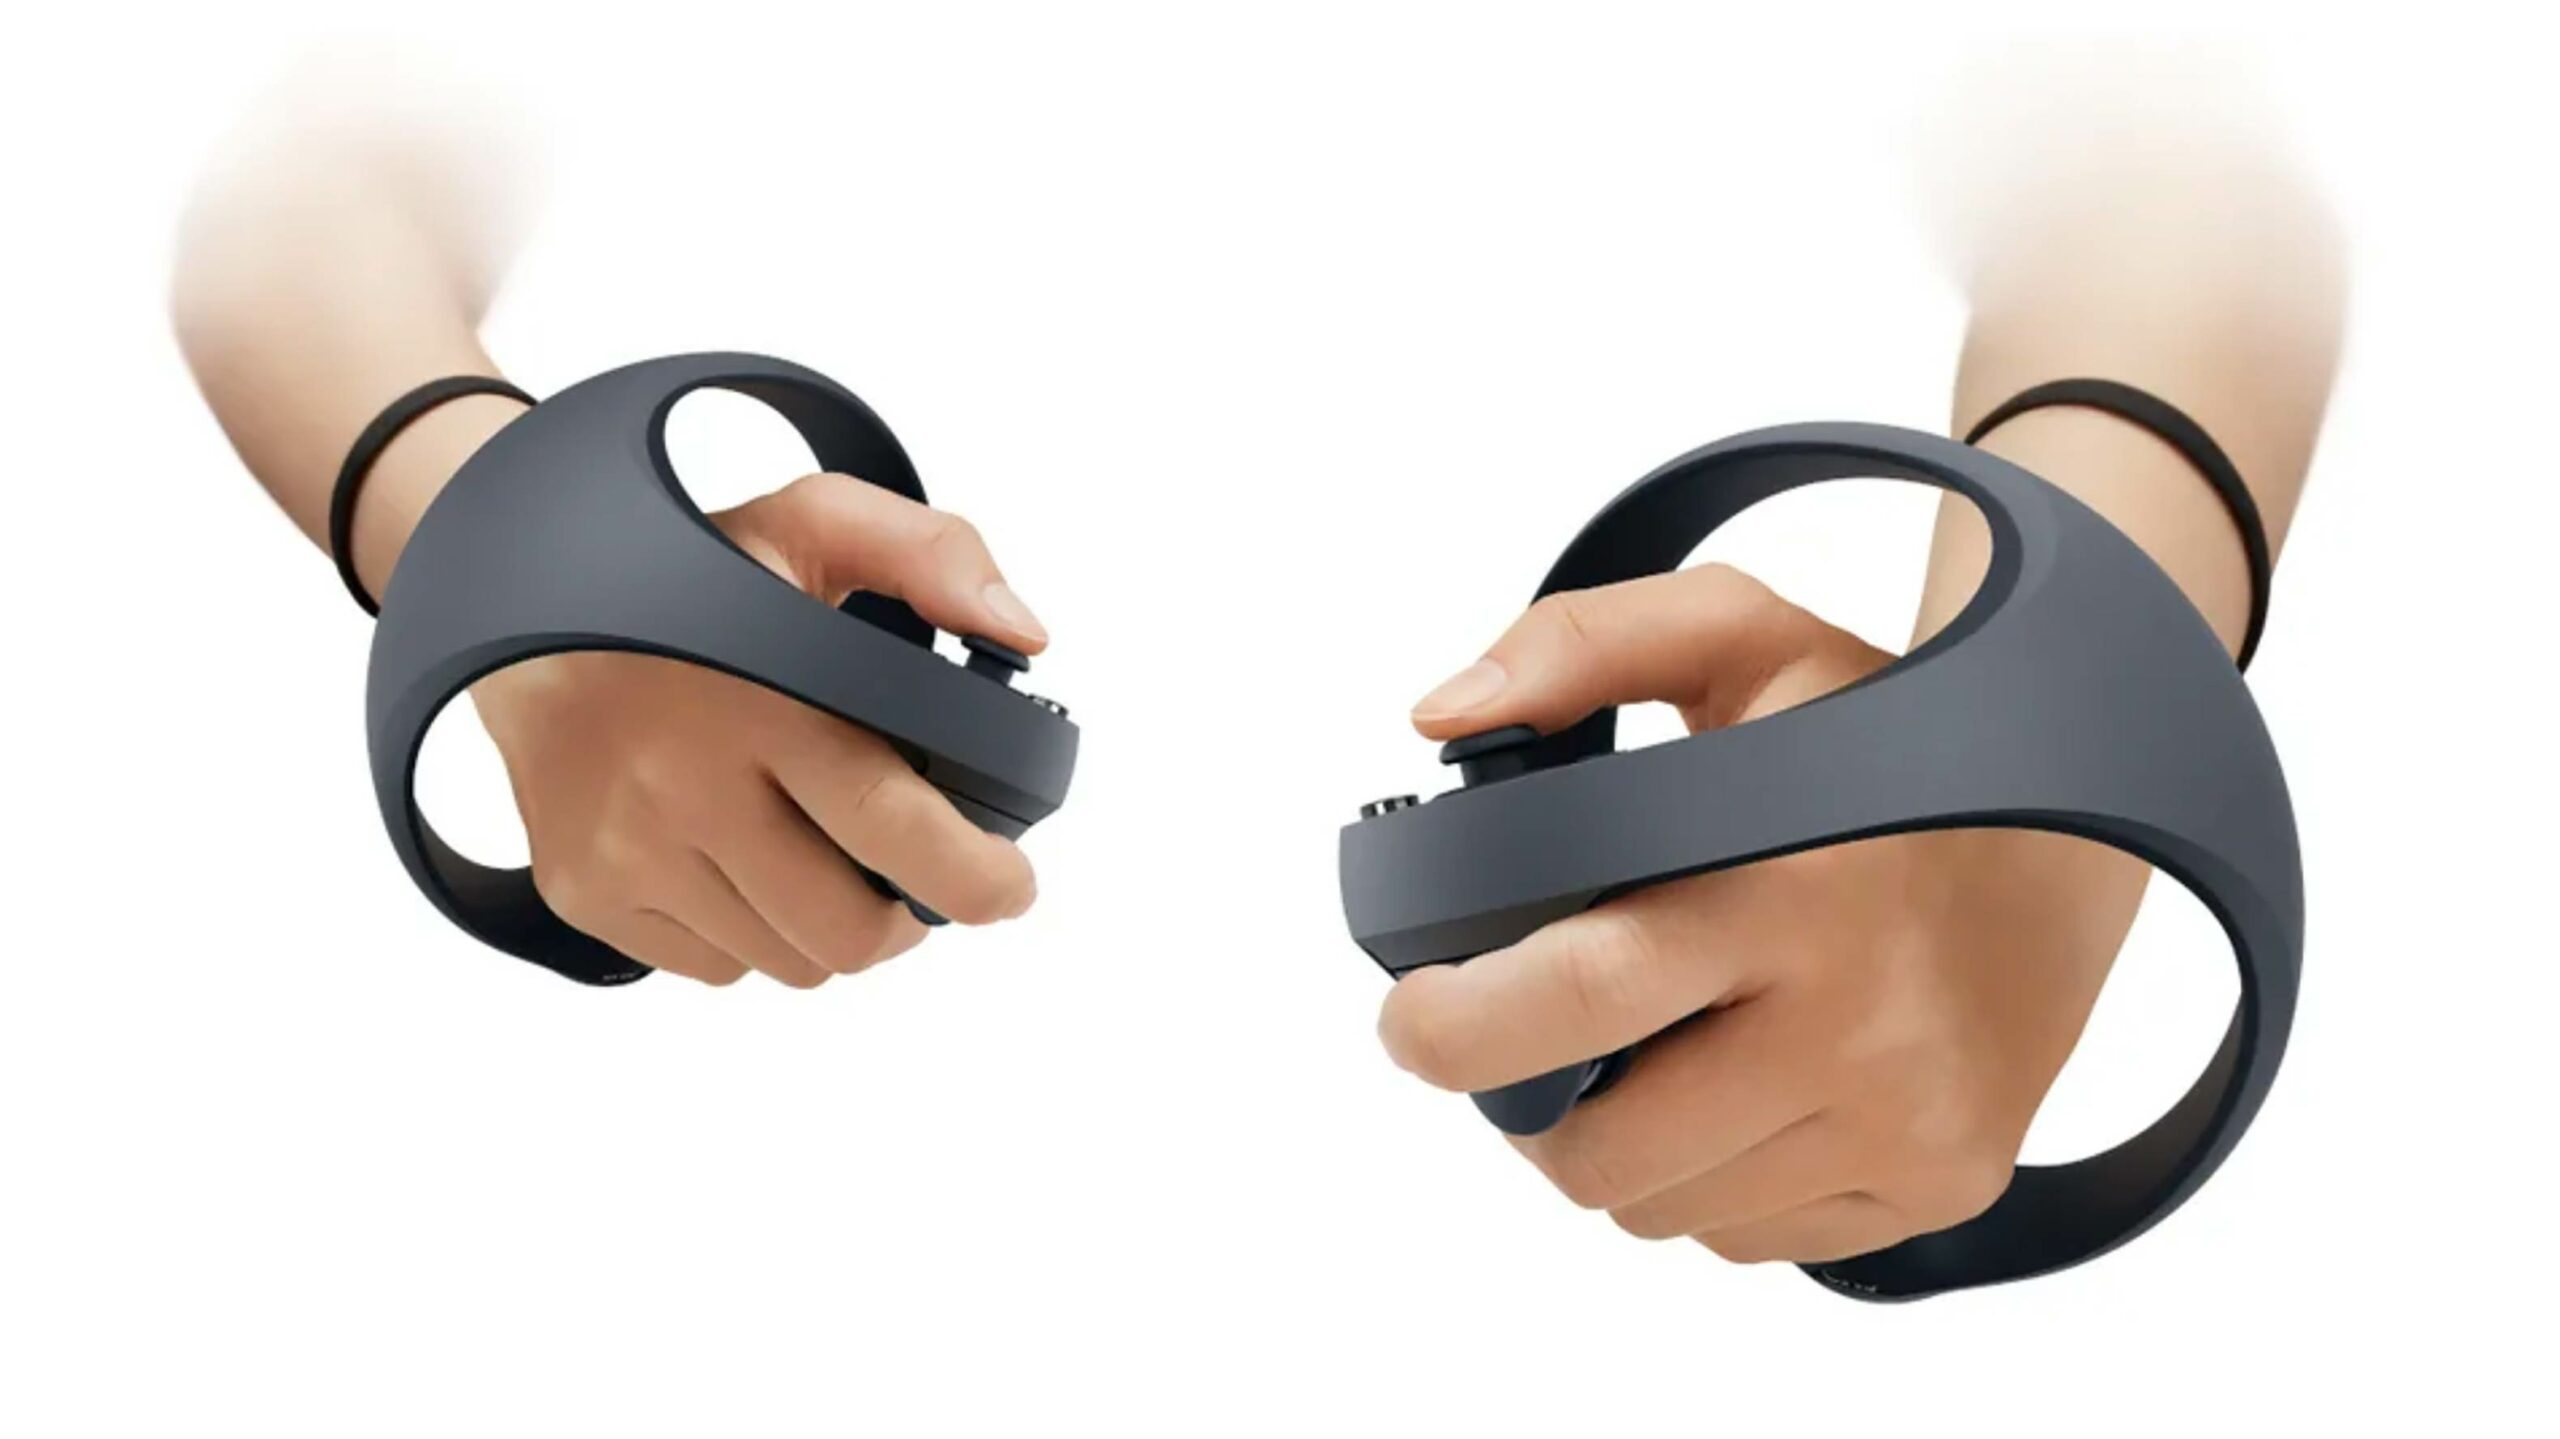 PS VR 2 controllers